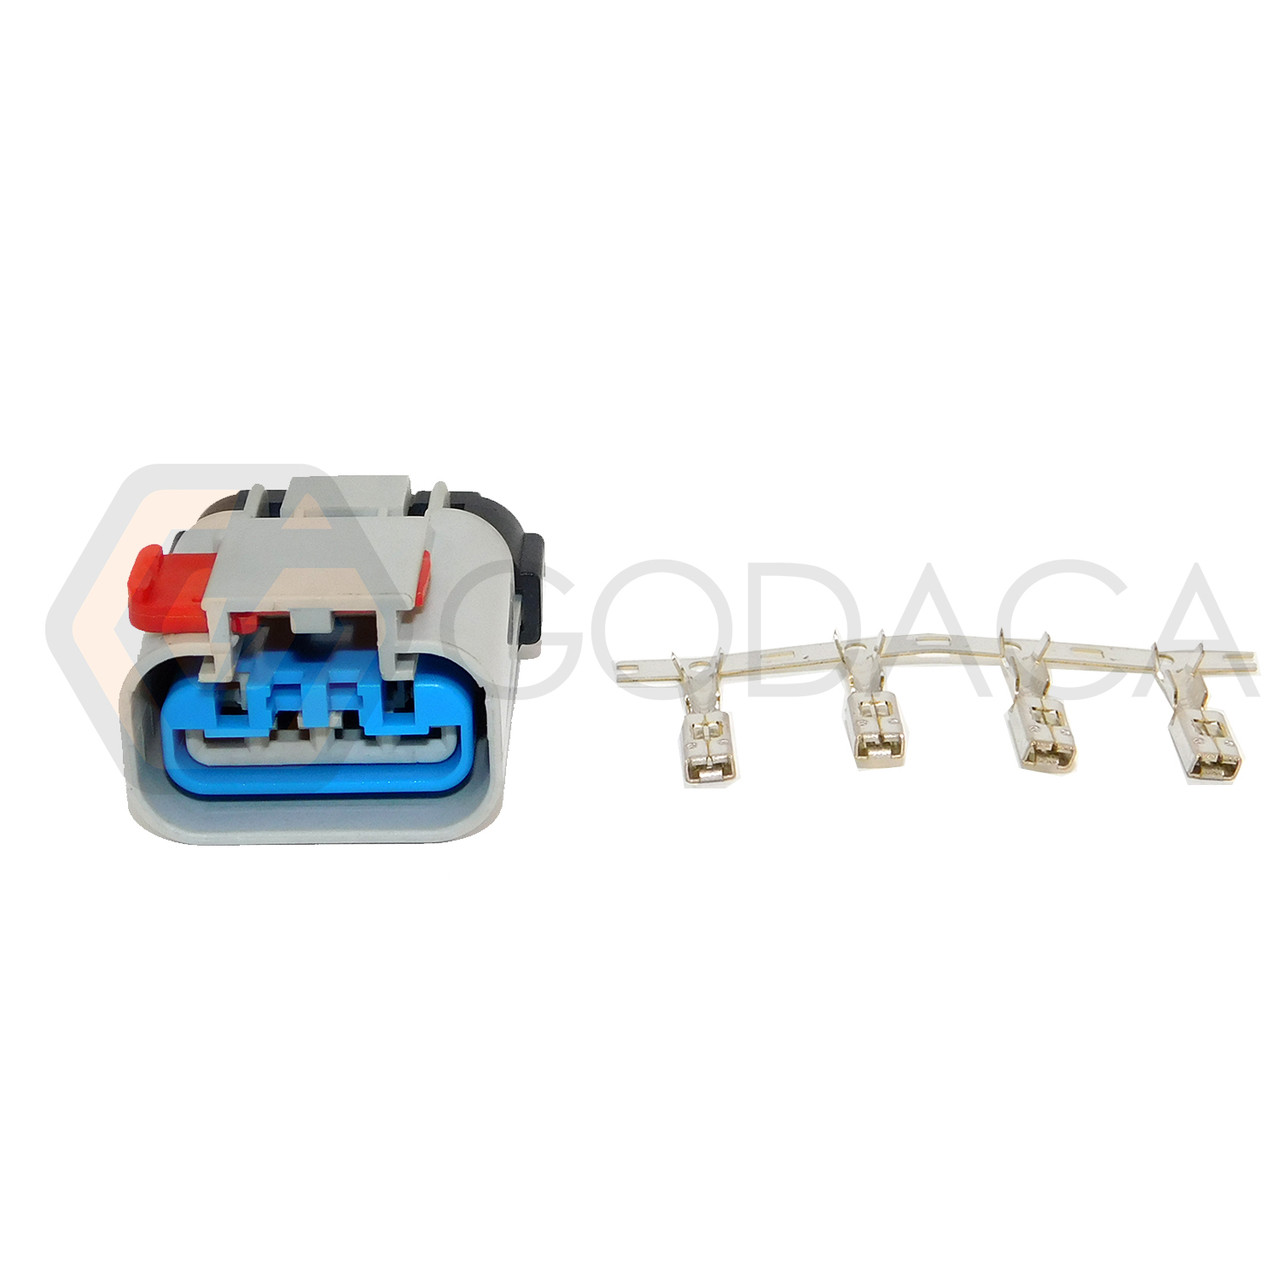 hight resolution of 1x connector 4 way 4 pin for dodge fuel pump sender pt1402 w out wire godaca llc